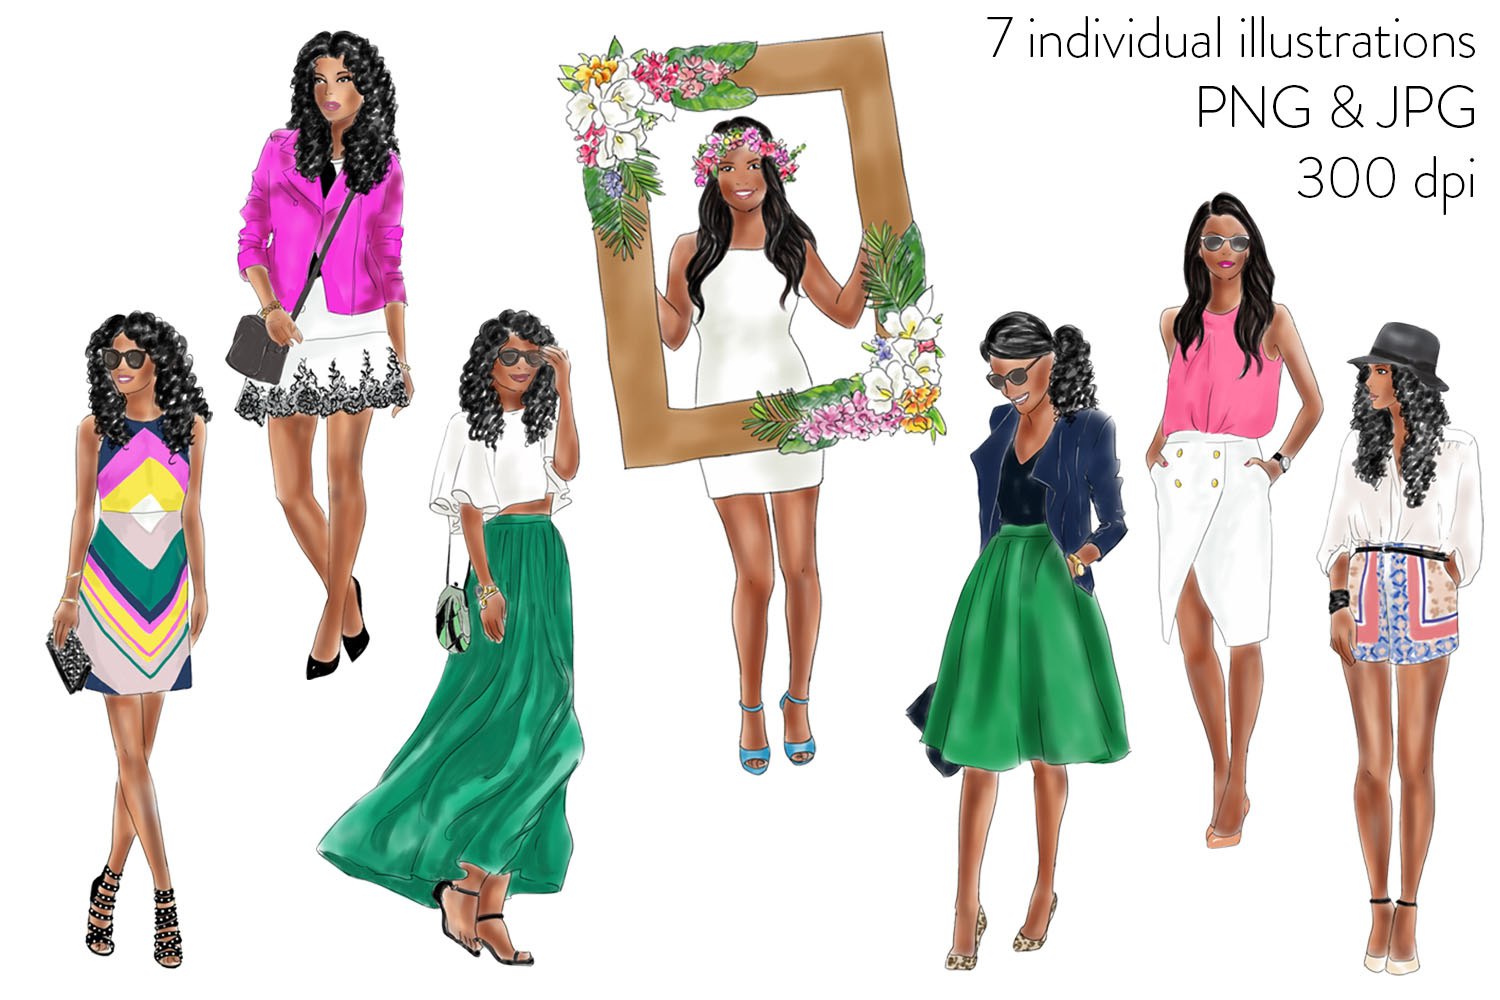 Fashion Girls - Volume 1 ( Dark skin) fashion illustration clipart example image 2